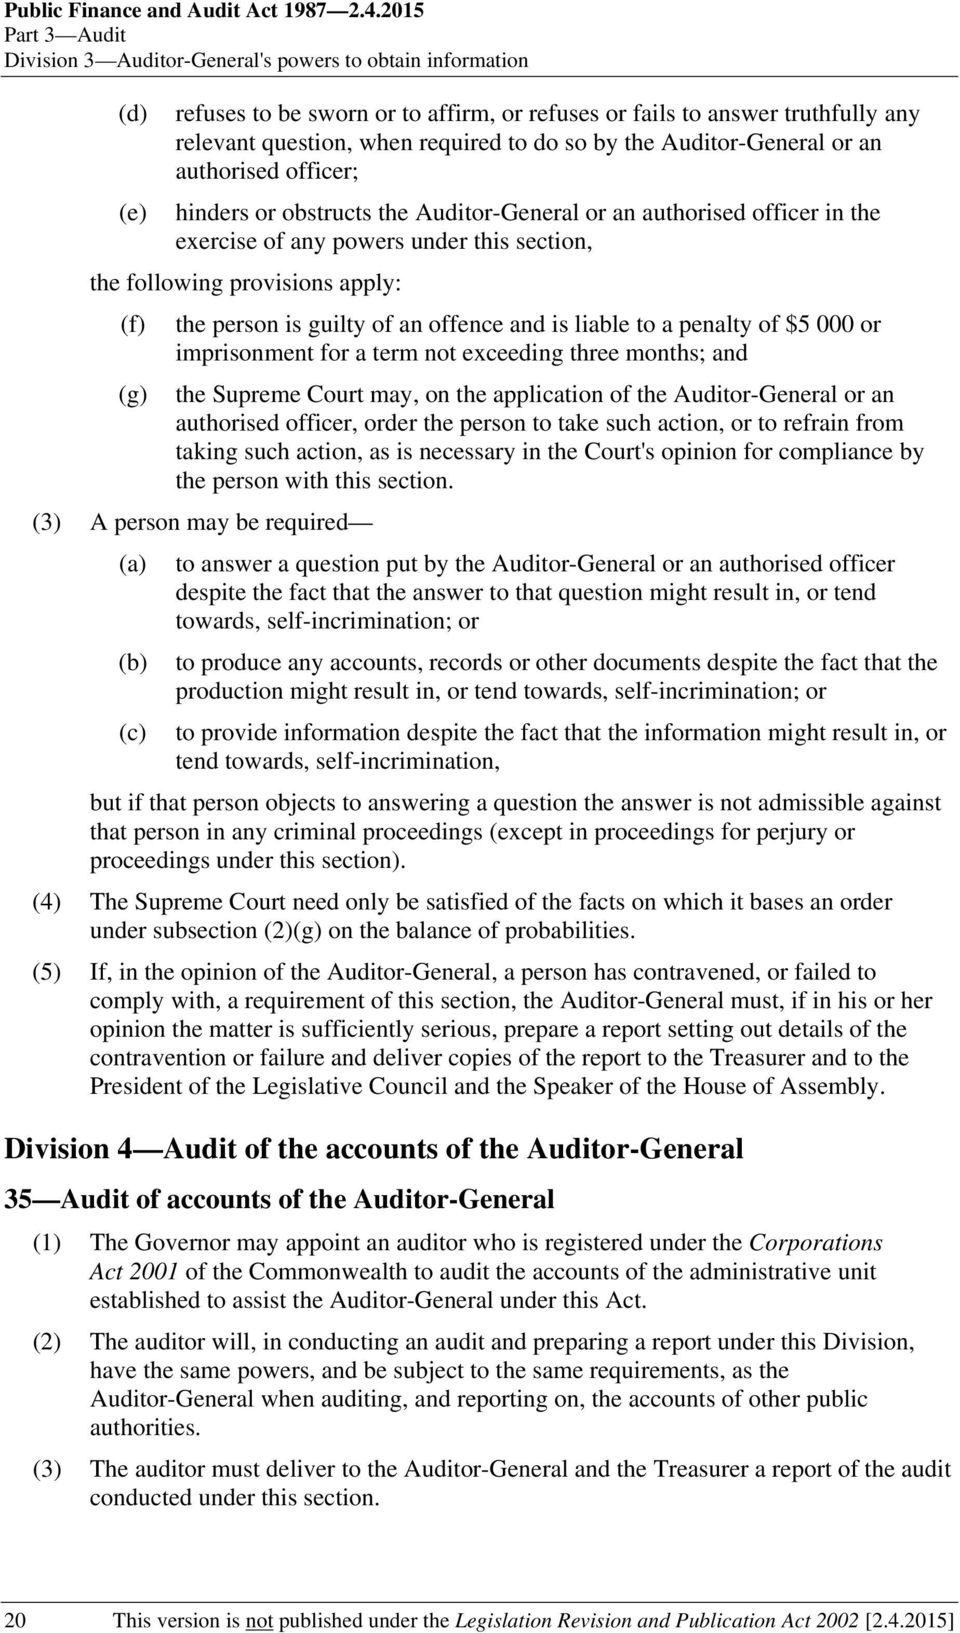 do so by the Auditor-General or an authorised officer; hinders or obstructs the Auditor-General or an authorised officer in the exercise of any powers under this section, the following provisions